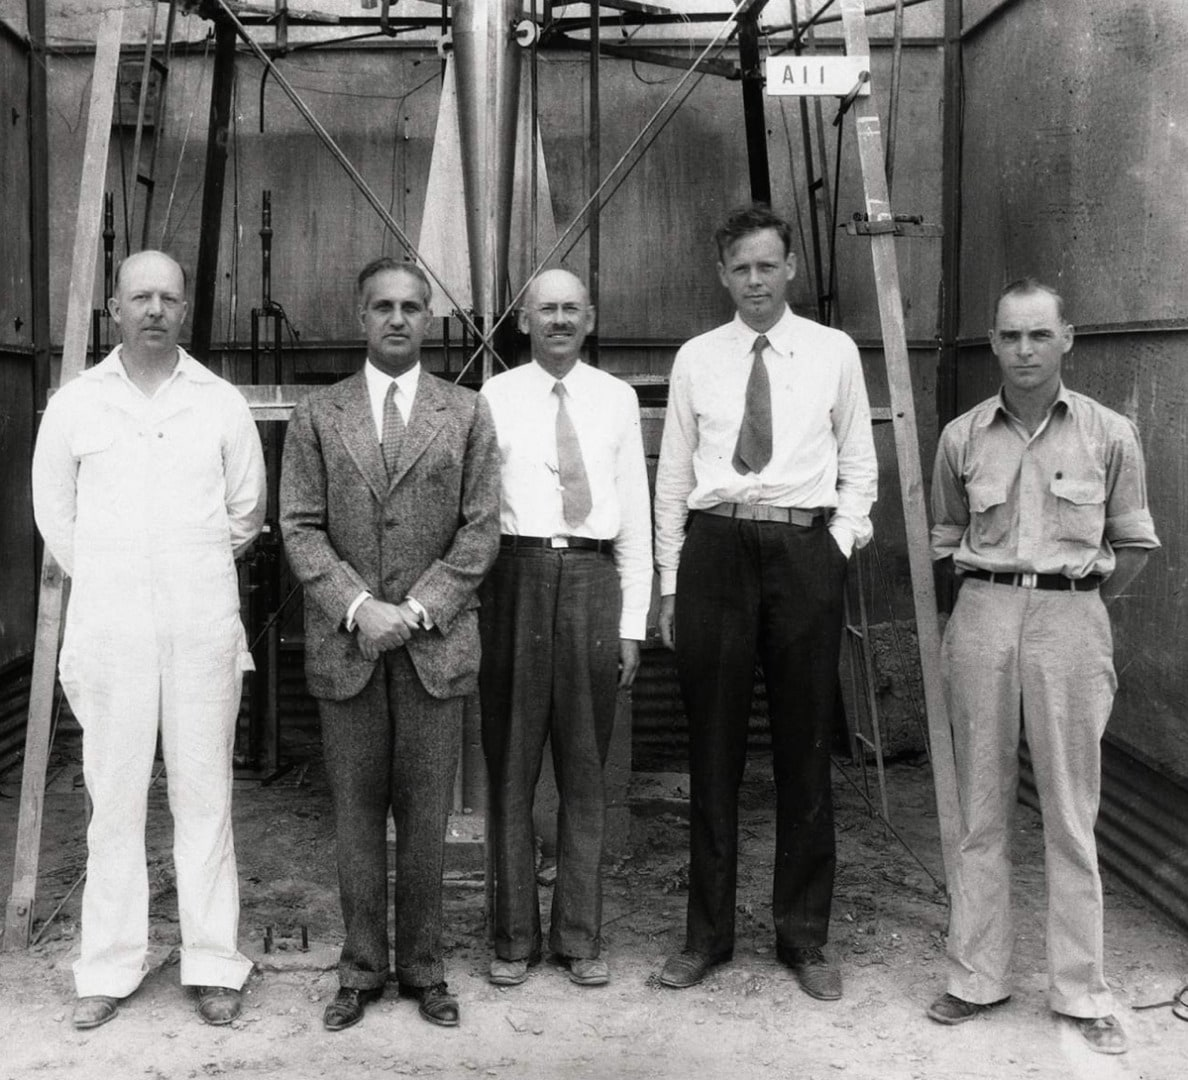 Robert Goddard, Charles Lindbergh and others in New Mexico